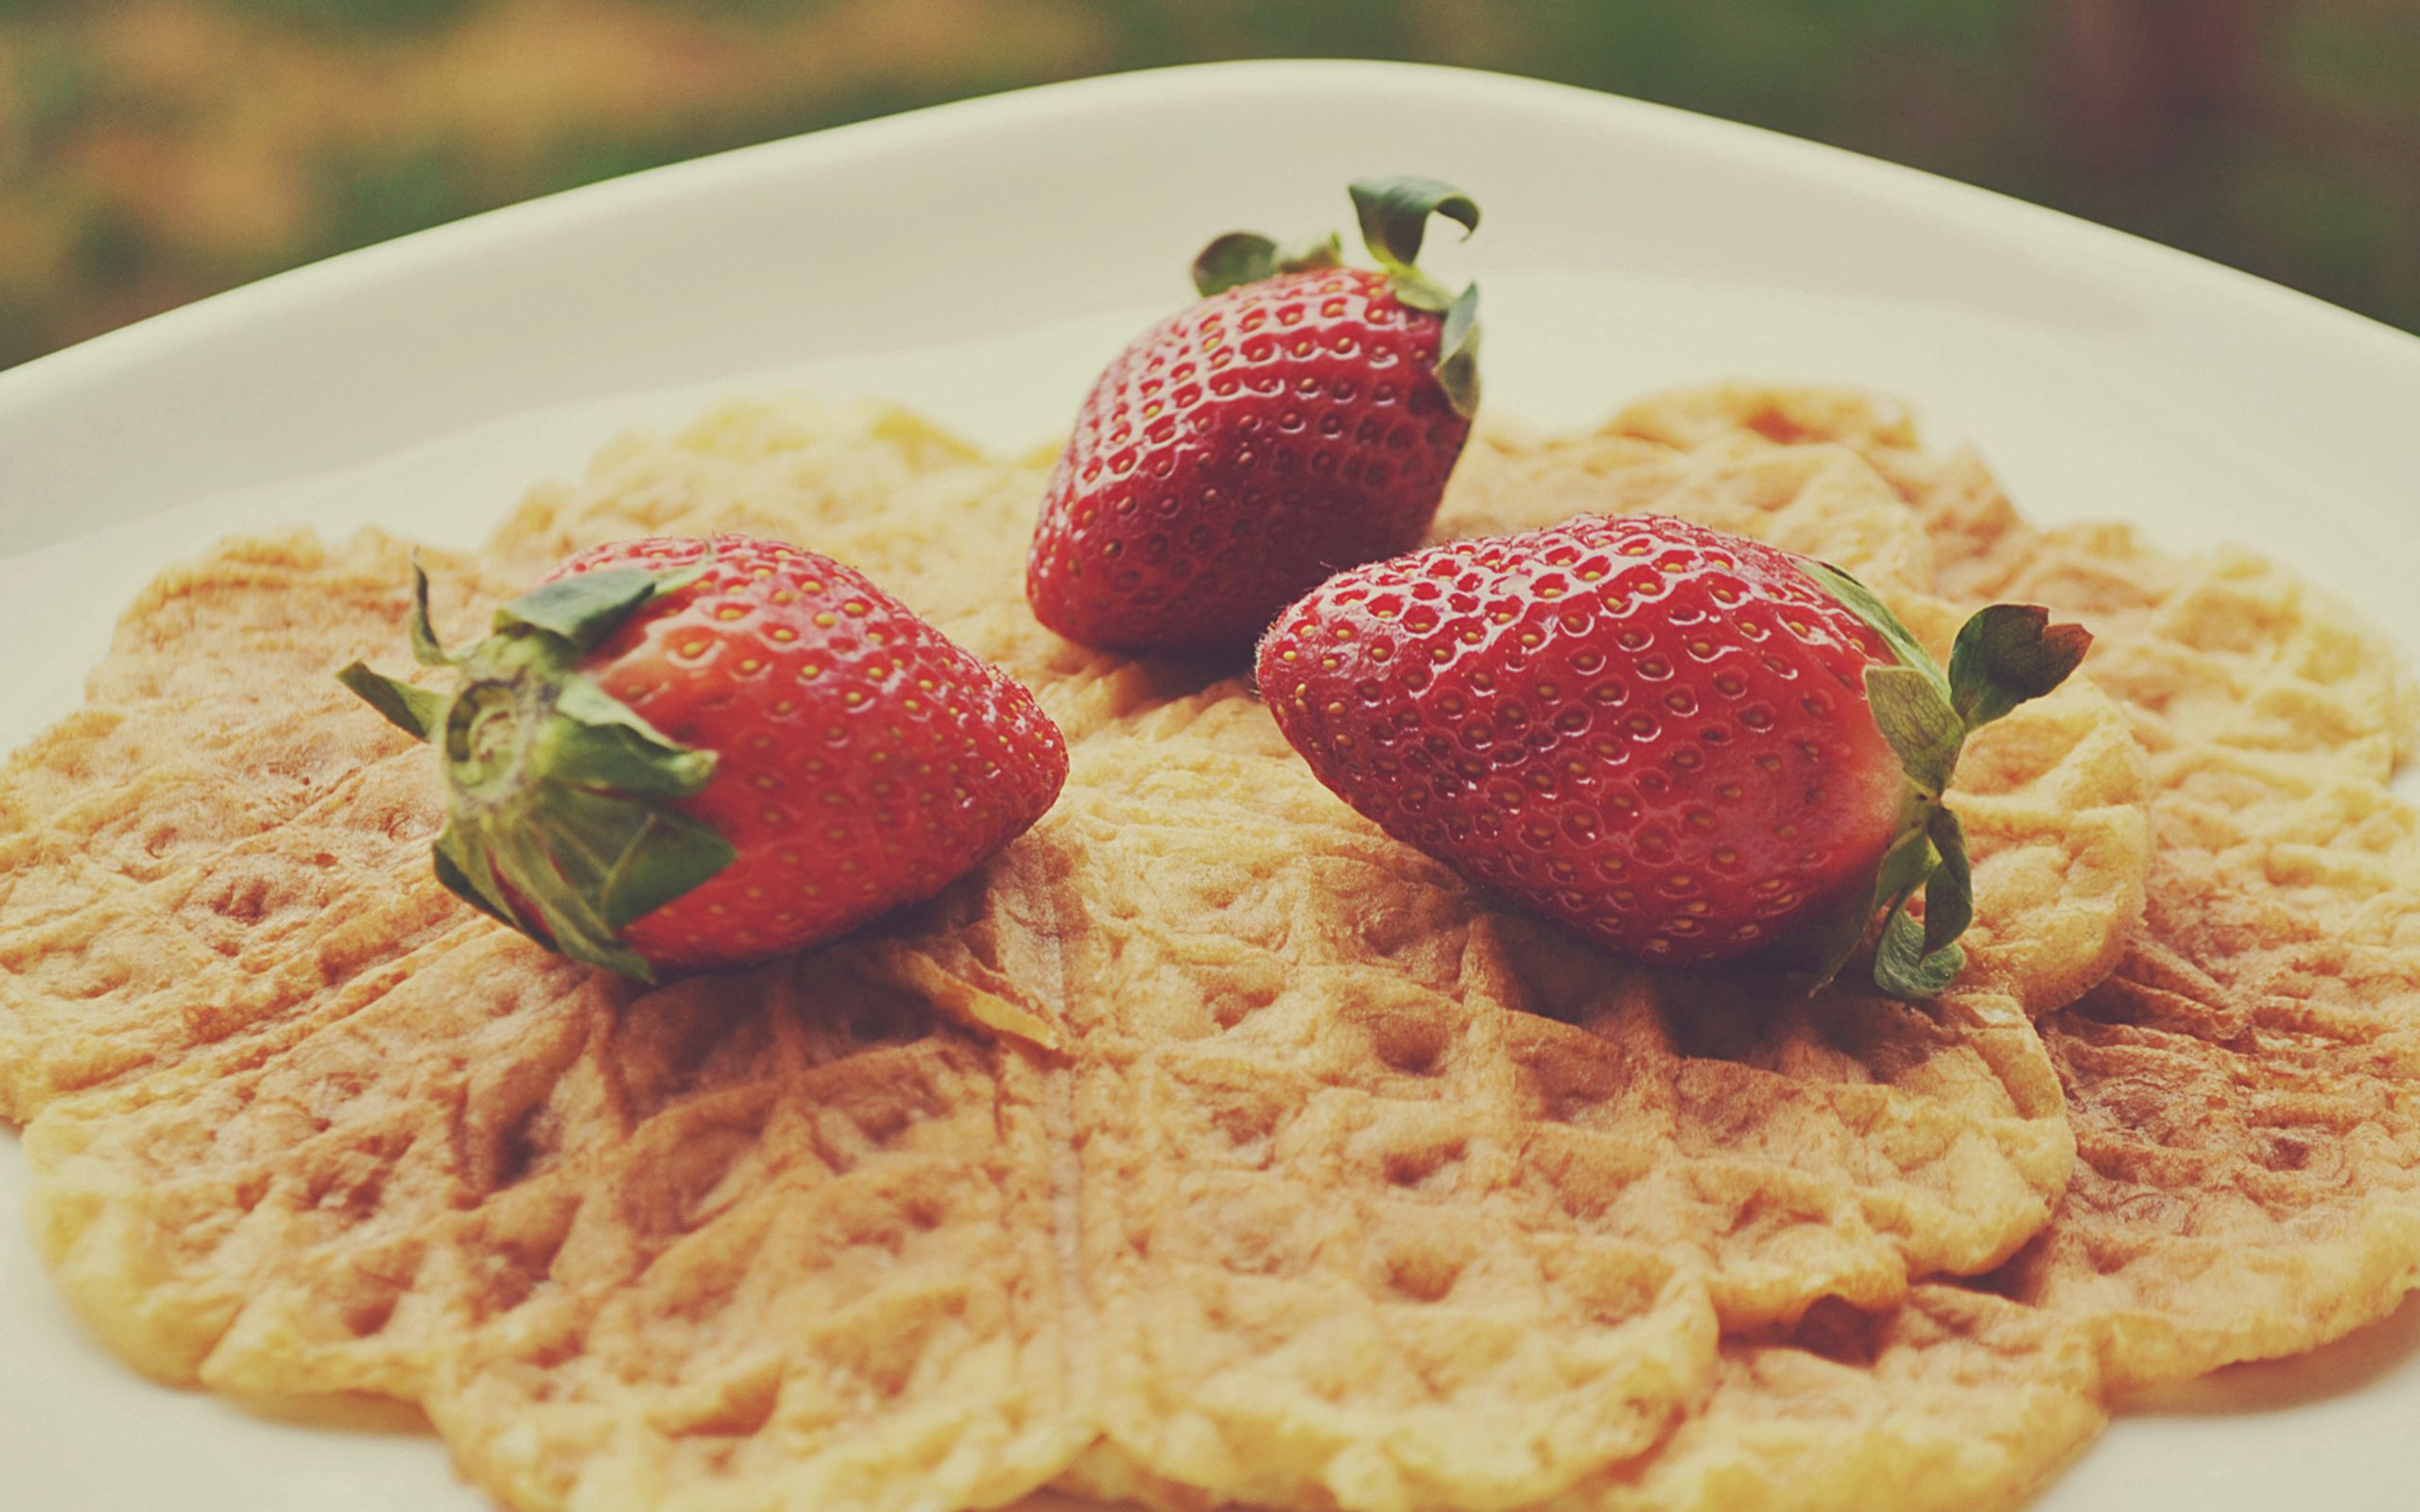 101326 download wallpaper Food, Strawberry, Berries screensavers and pictures for free